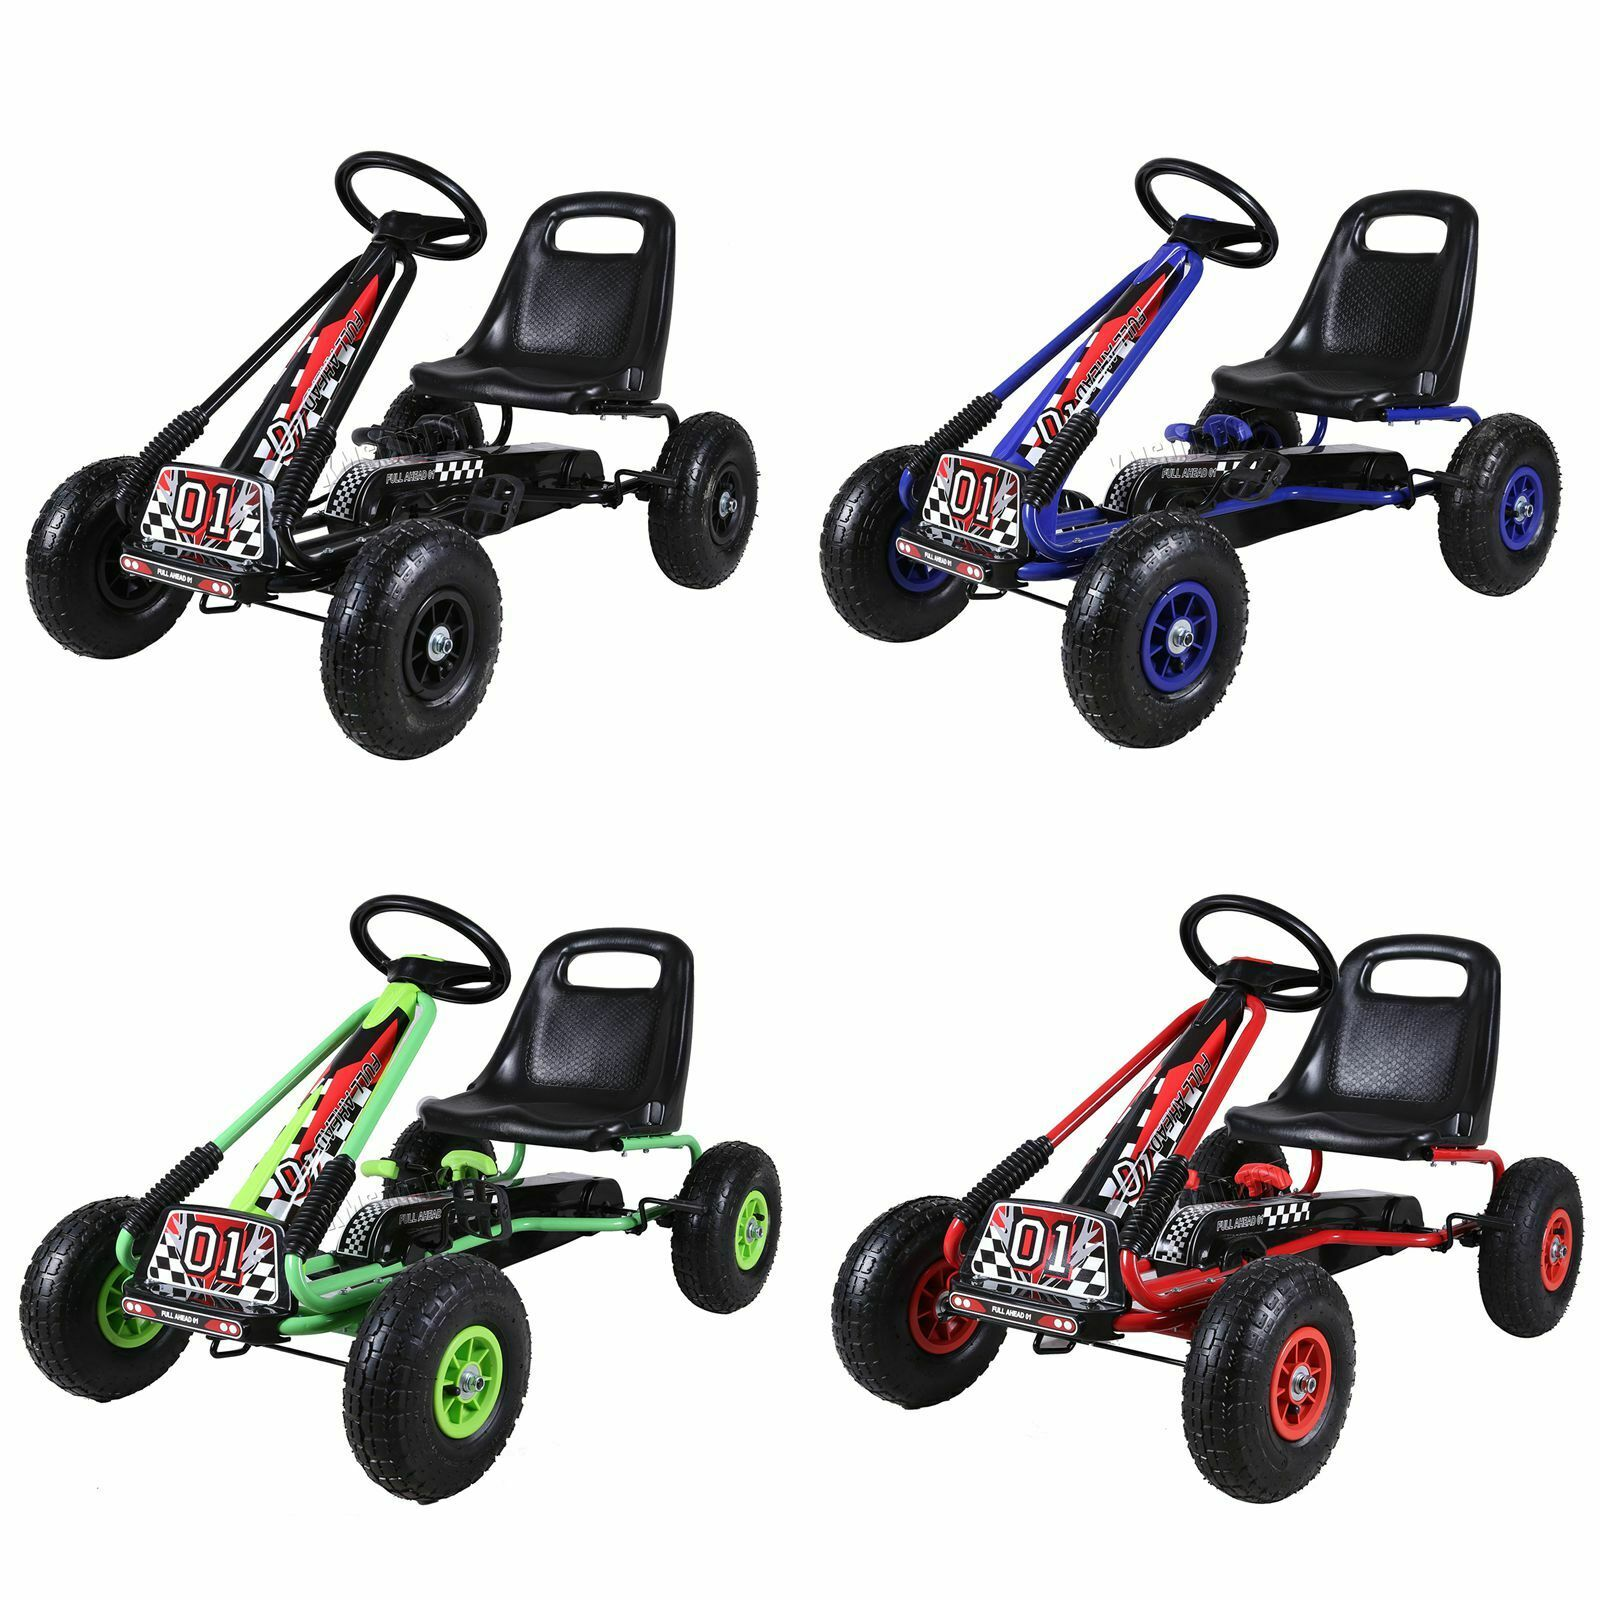 FoxHunter barn Go Kart Ride on Car Pedal With Rubber Wheels Justerbara Säte G02